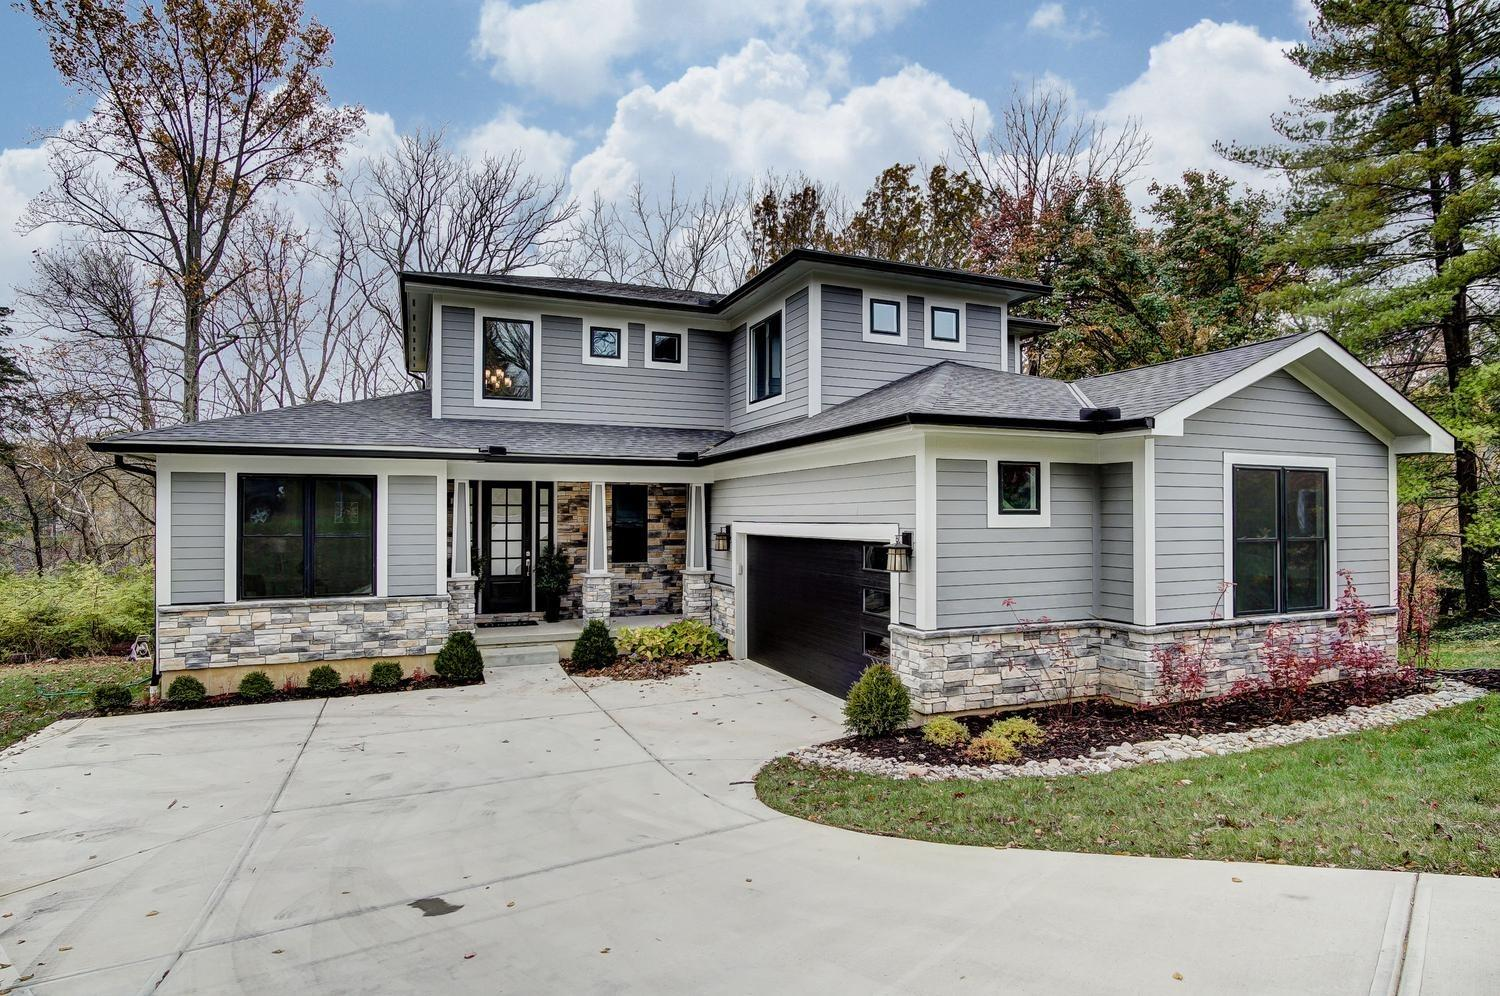 8701 Appleknoll Ln Kenwood, OH